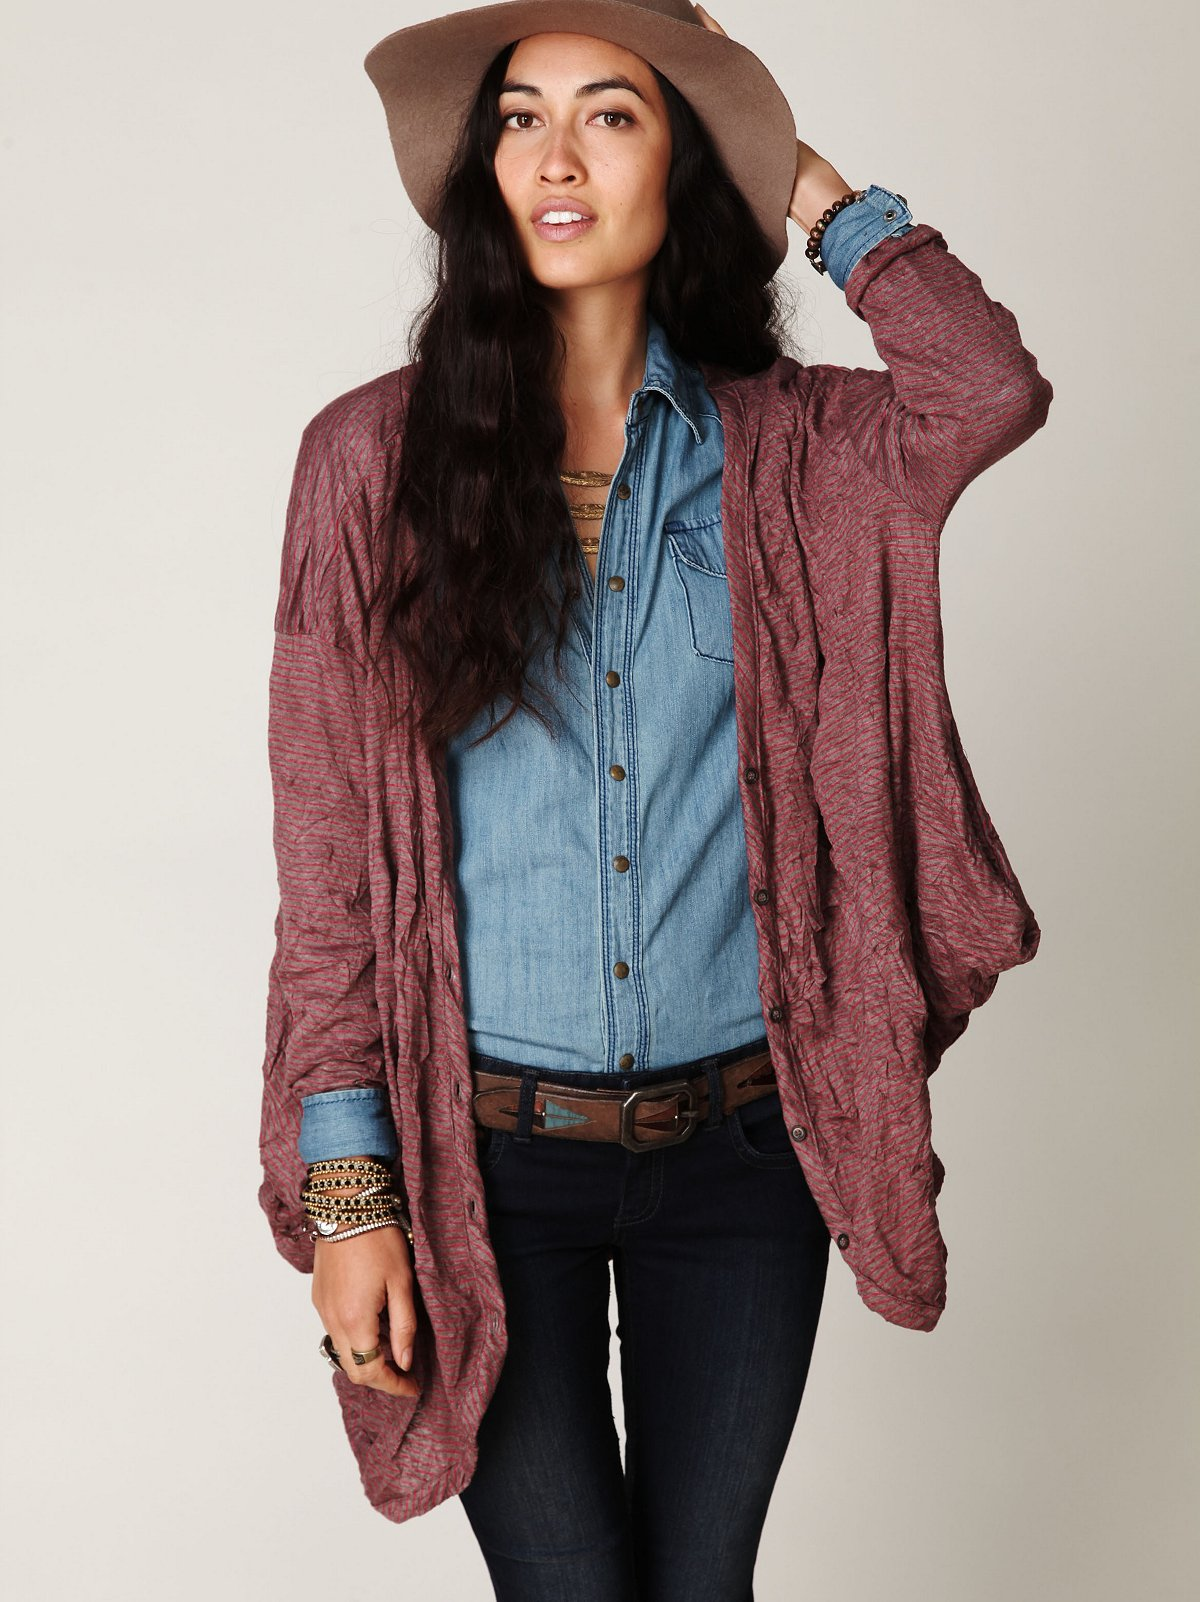 About Town Cardi